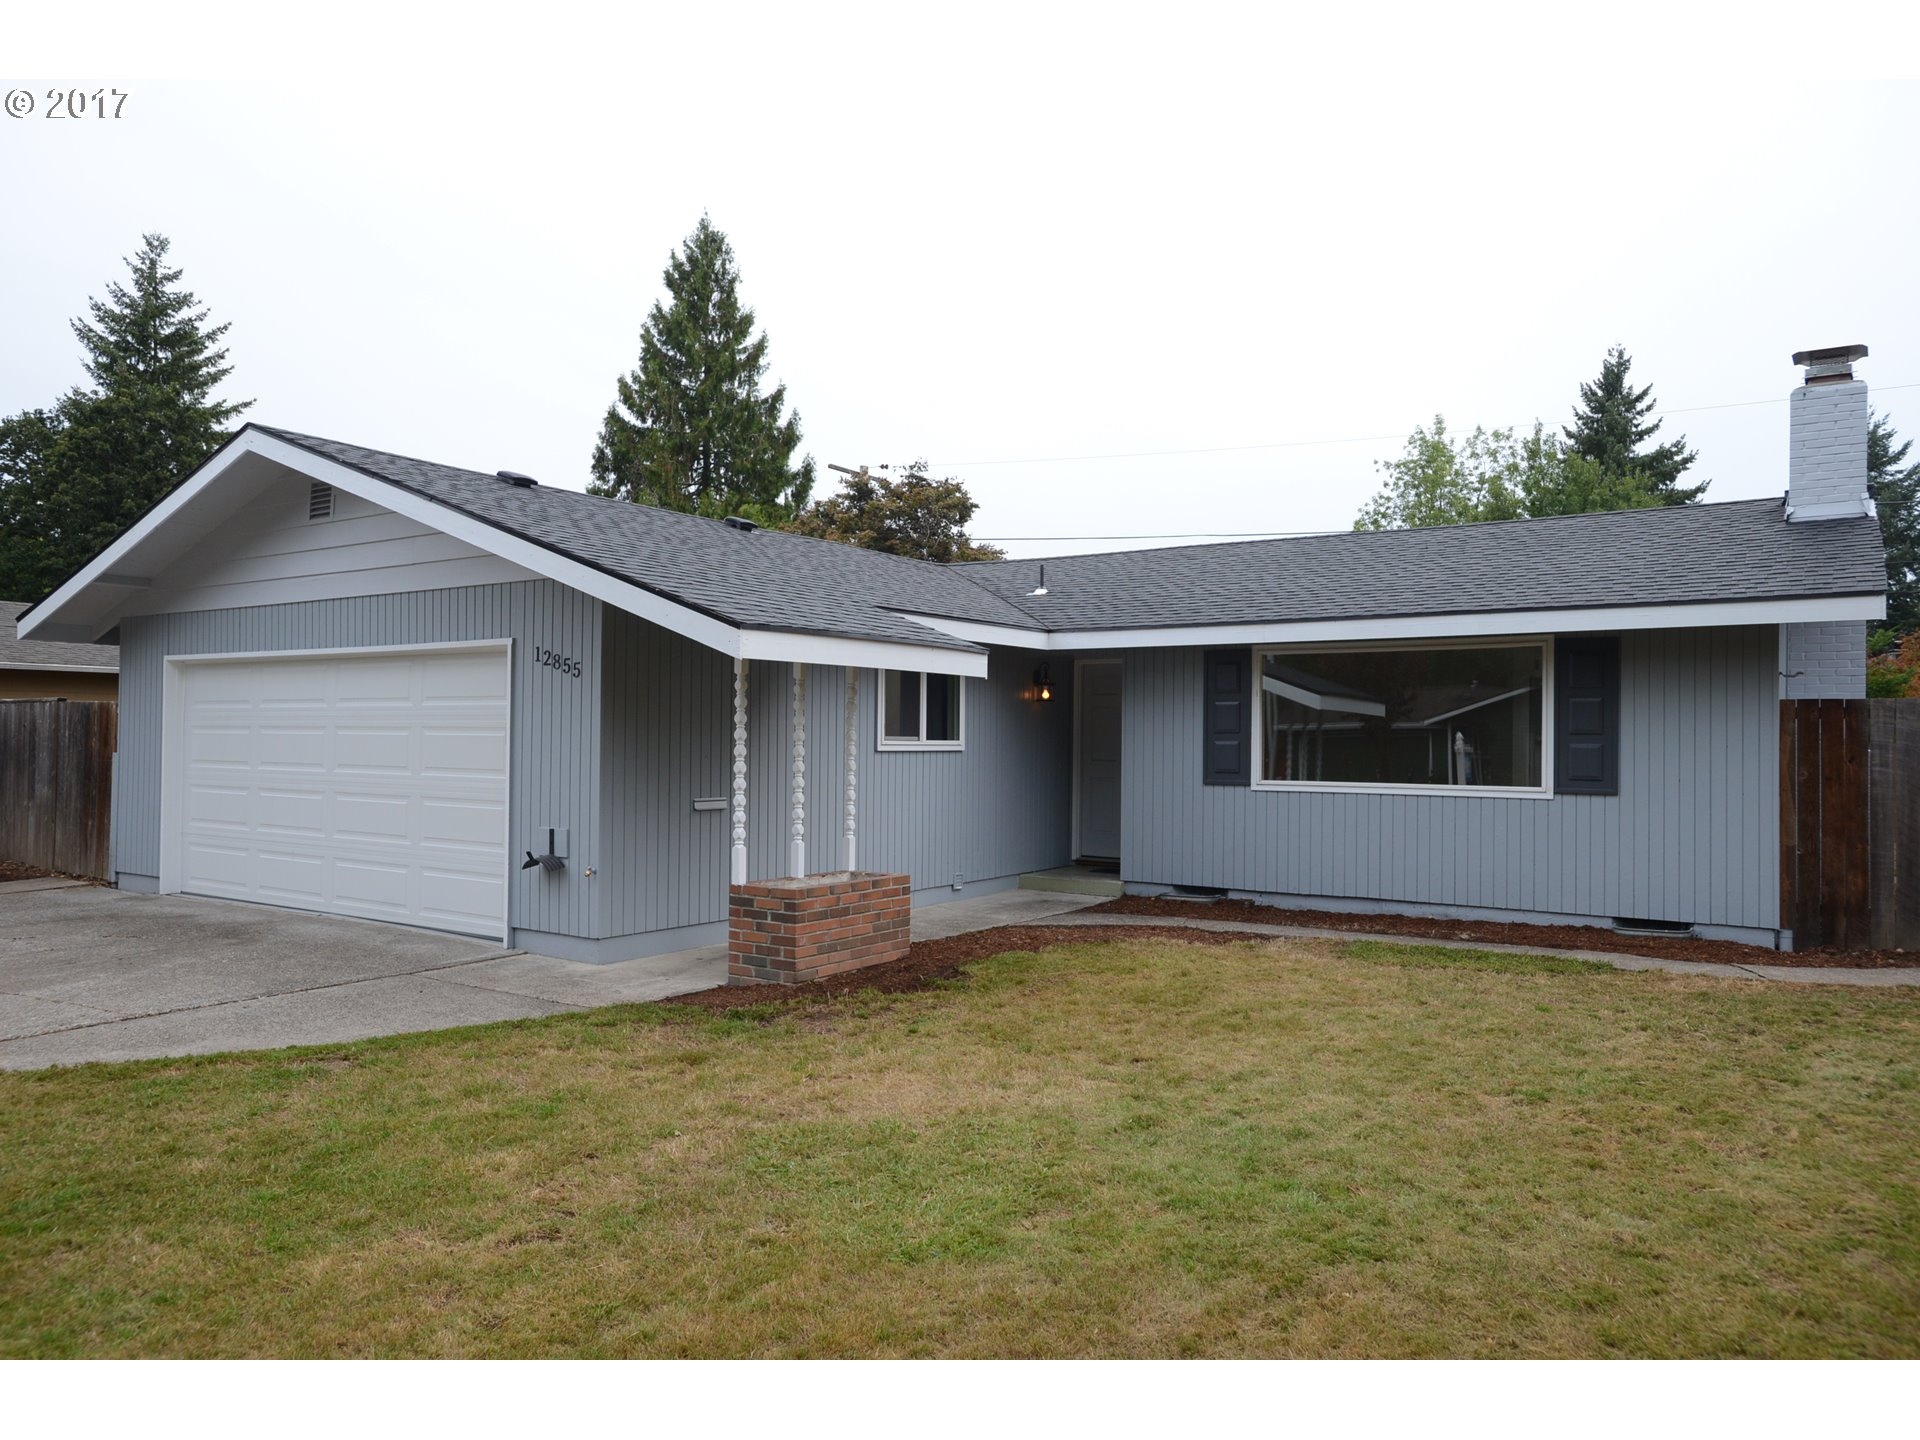 OPEN Sunday 9/24 from 1-3pm. Adorable ranch house in central Beaverton. This sweet home has been extensively remodeled including new roof, new water heater, interior and exterior paint, and more. Home Warranty prepaid thru 7/30/2018. Seller is a licensed Real Estate Broker in the State of Oregon.